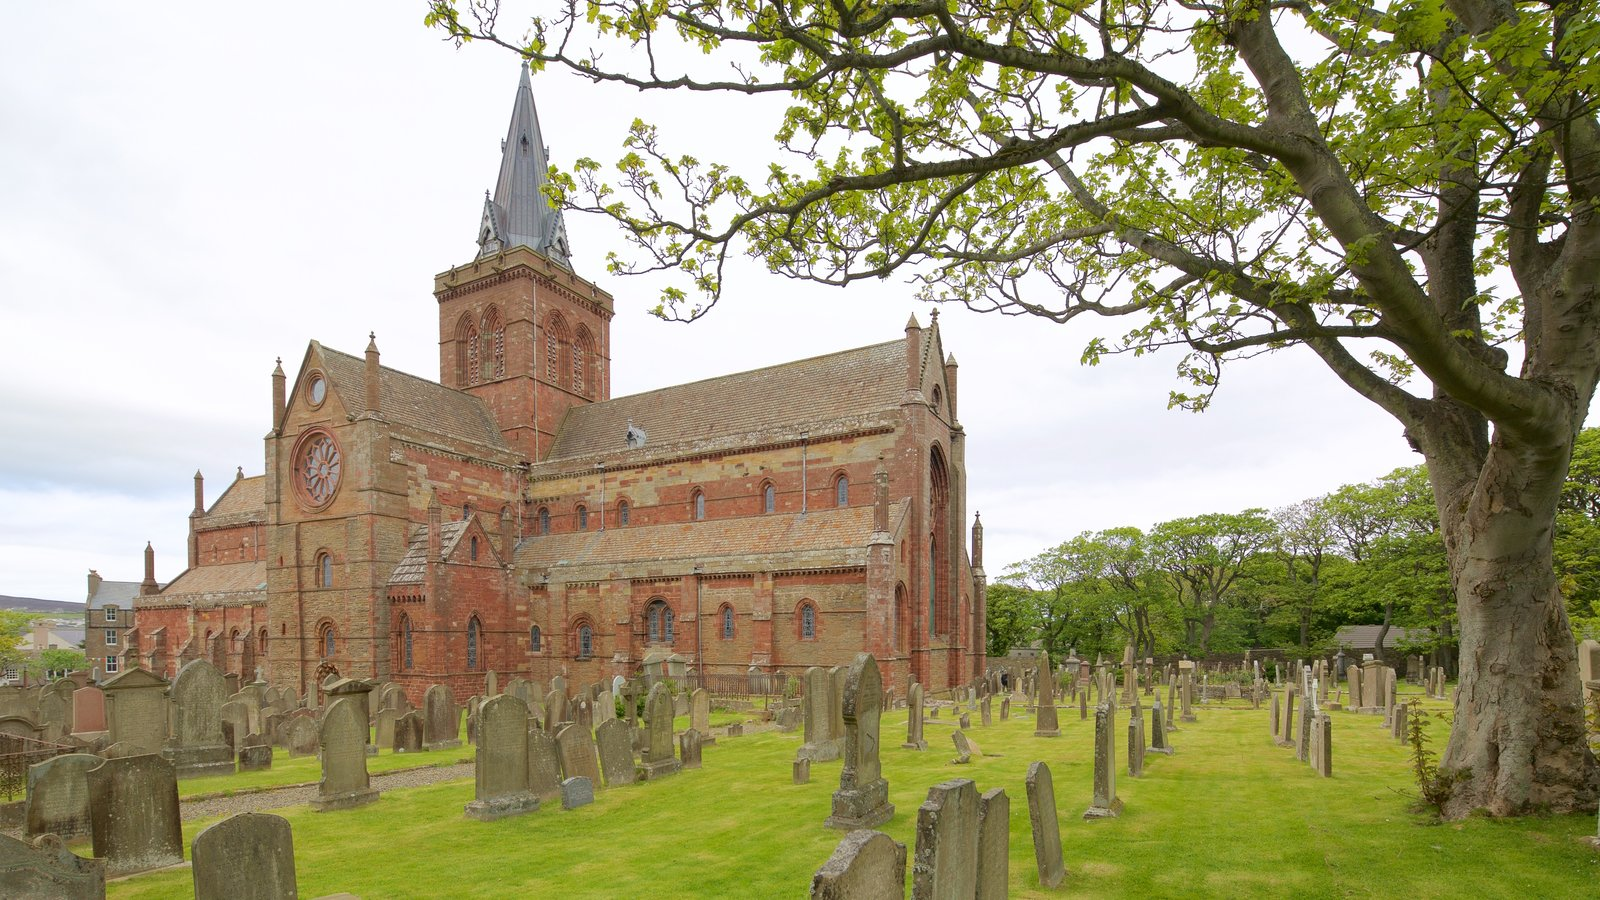 St. Magnus Cathedral featuring a church or cathedral, heritage architecture and heritage elements